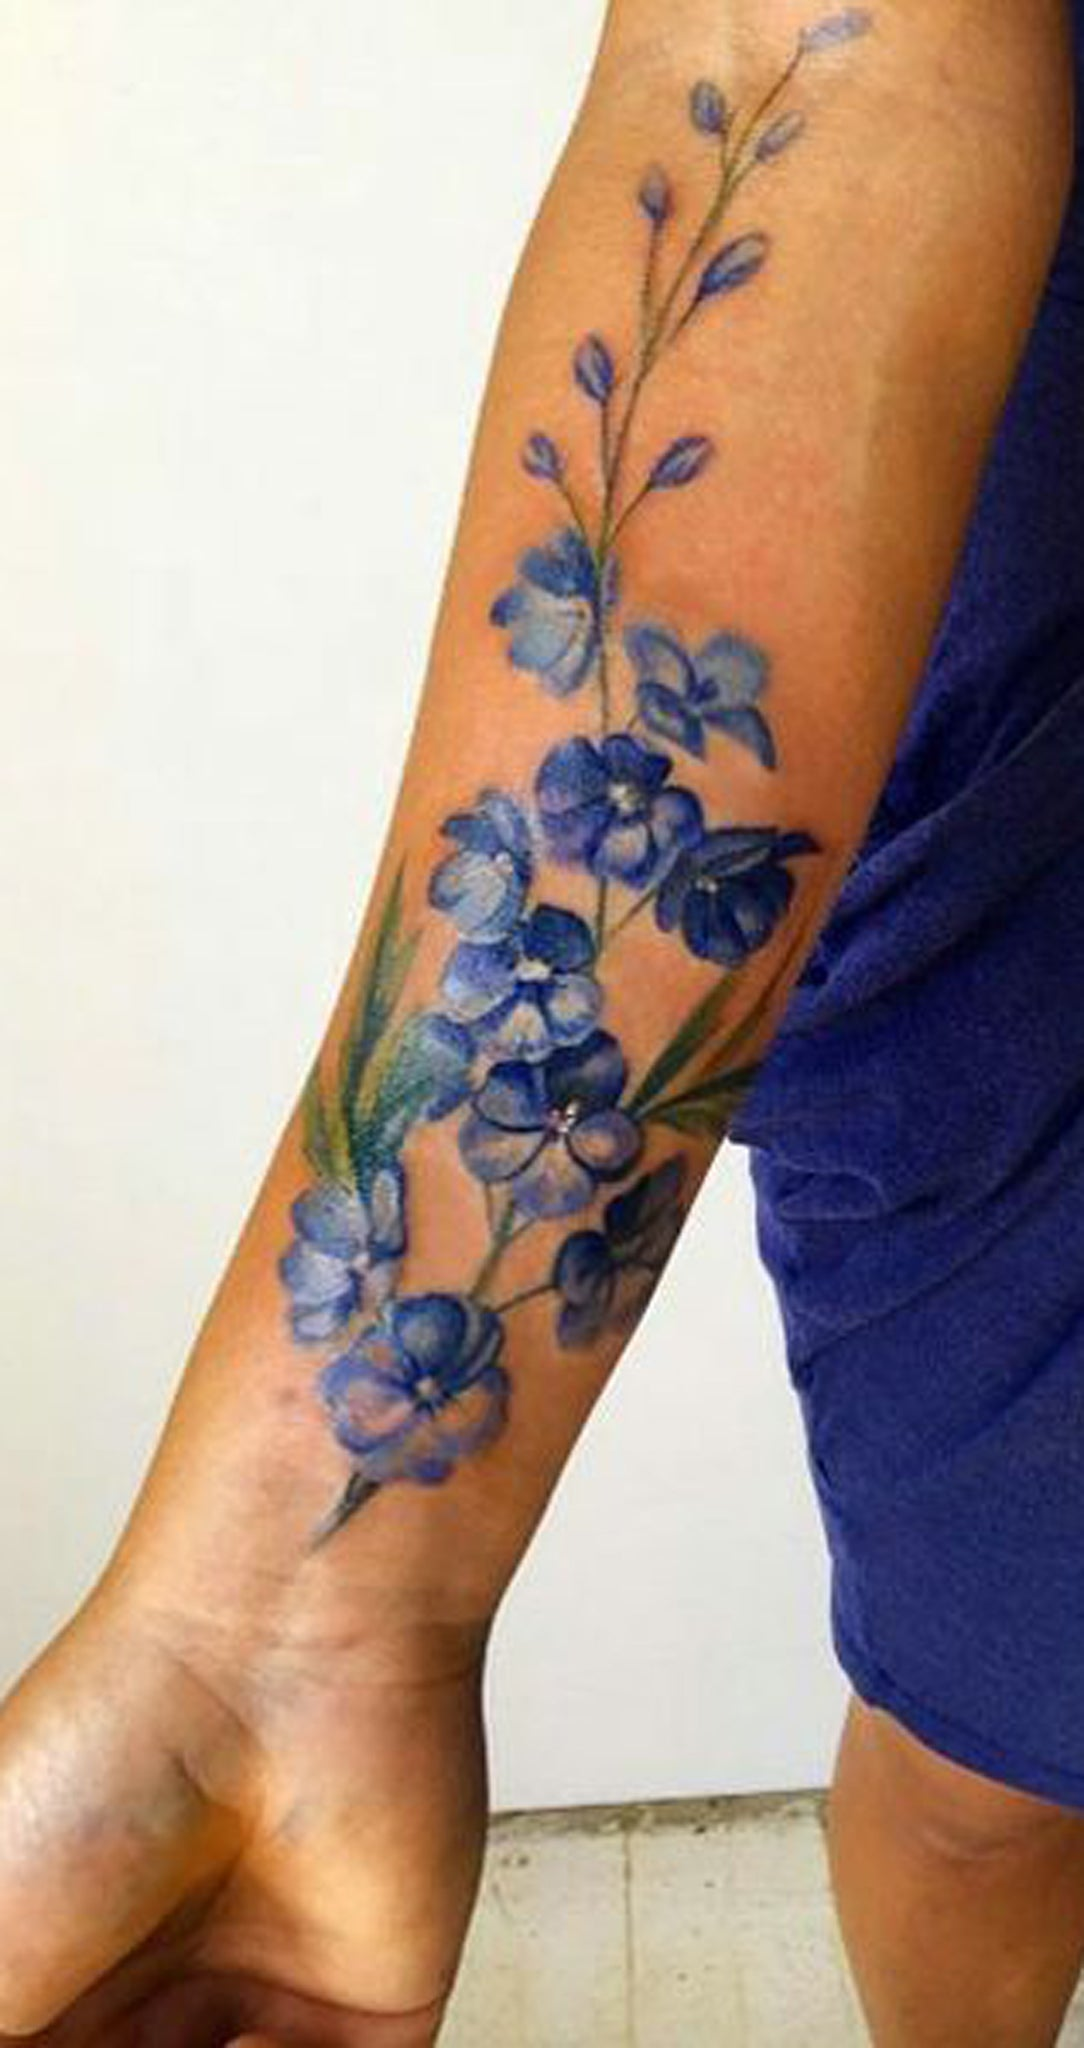 Watercolor Flower Forearm Tattoo Ideas for Women -  ideas de tatuaje de antebrazo acuarela flor - www.MyBodiArt.com